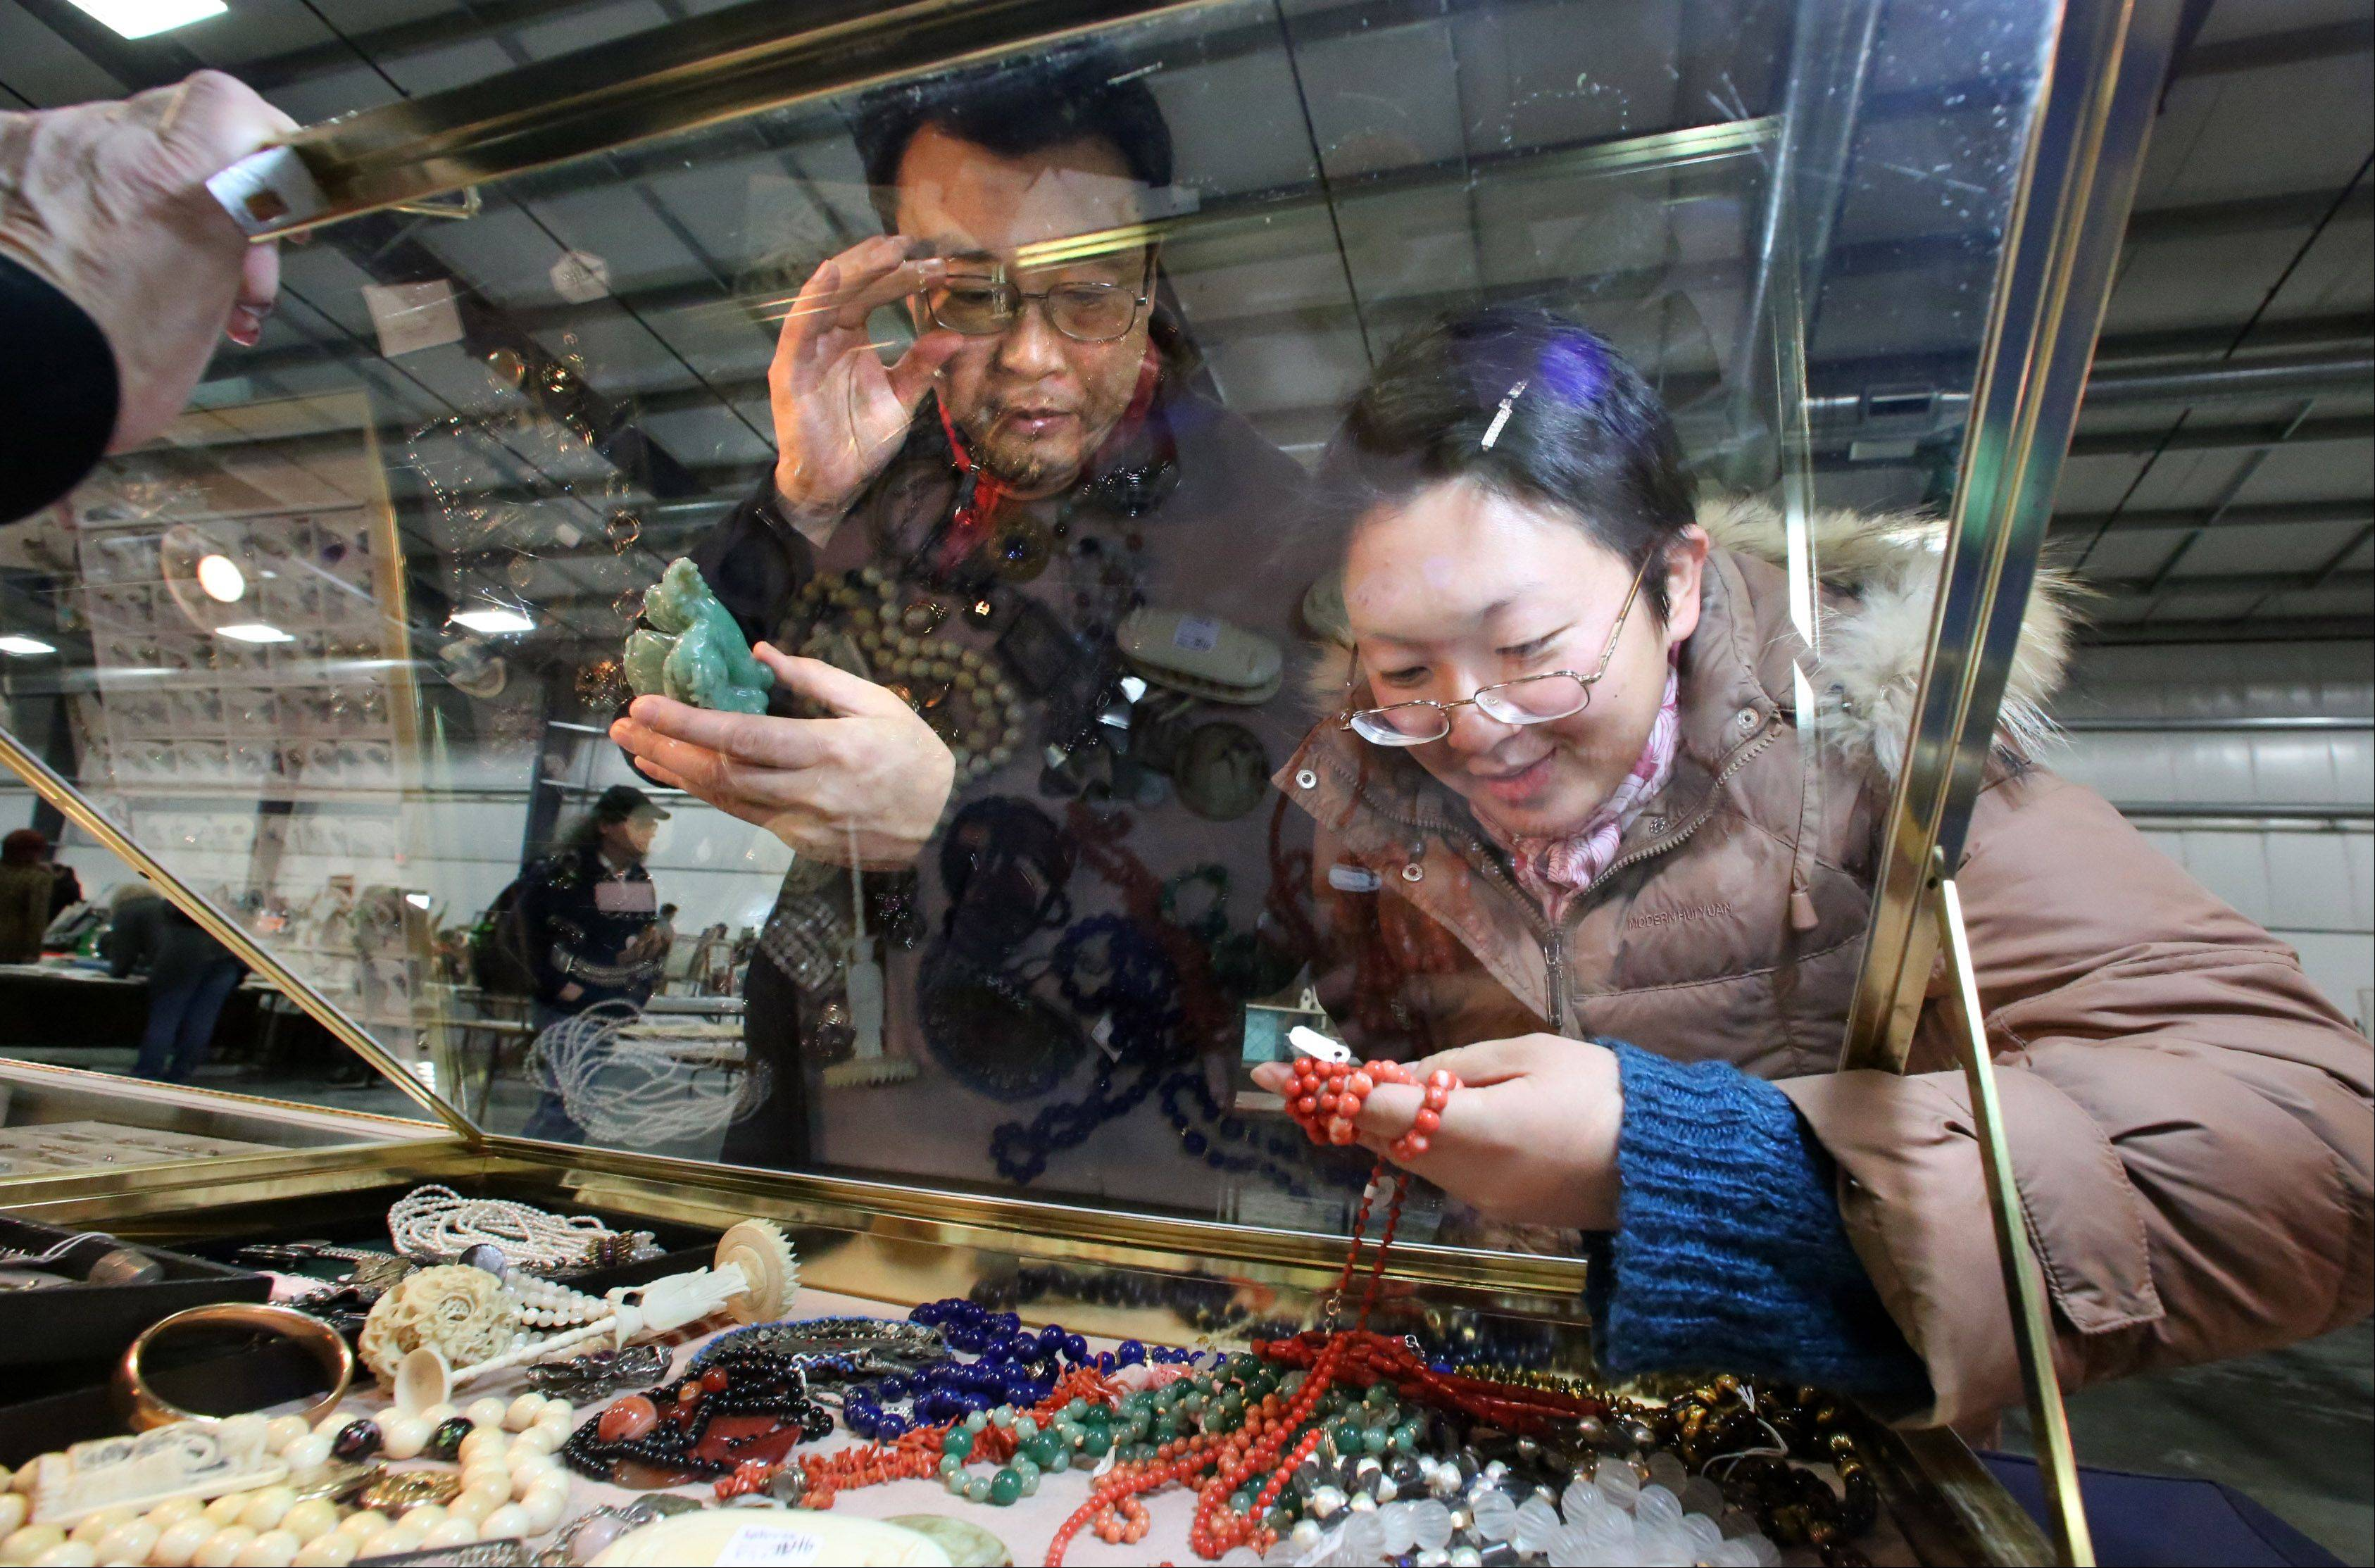 Bill and Natalie Wu of Chicago look at jade carvings and jewelry at the booth of Pam Benson of Orland Park at Zurko Antiques and Flea Market on Saturday at Lake County Fairgrounds in Grayslake.